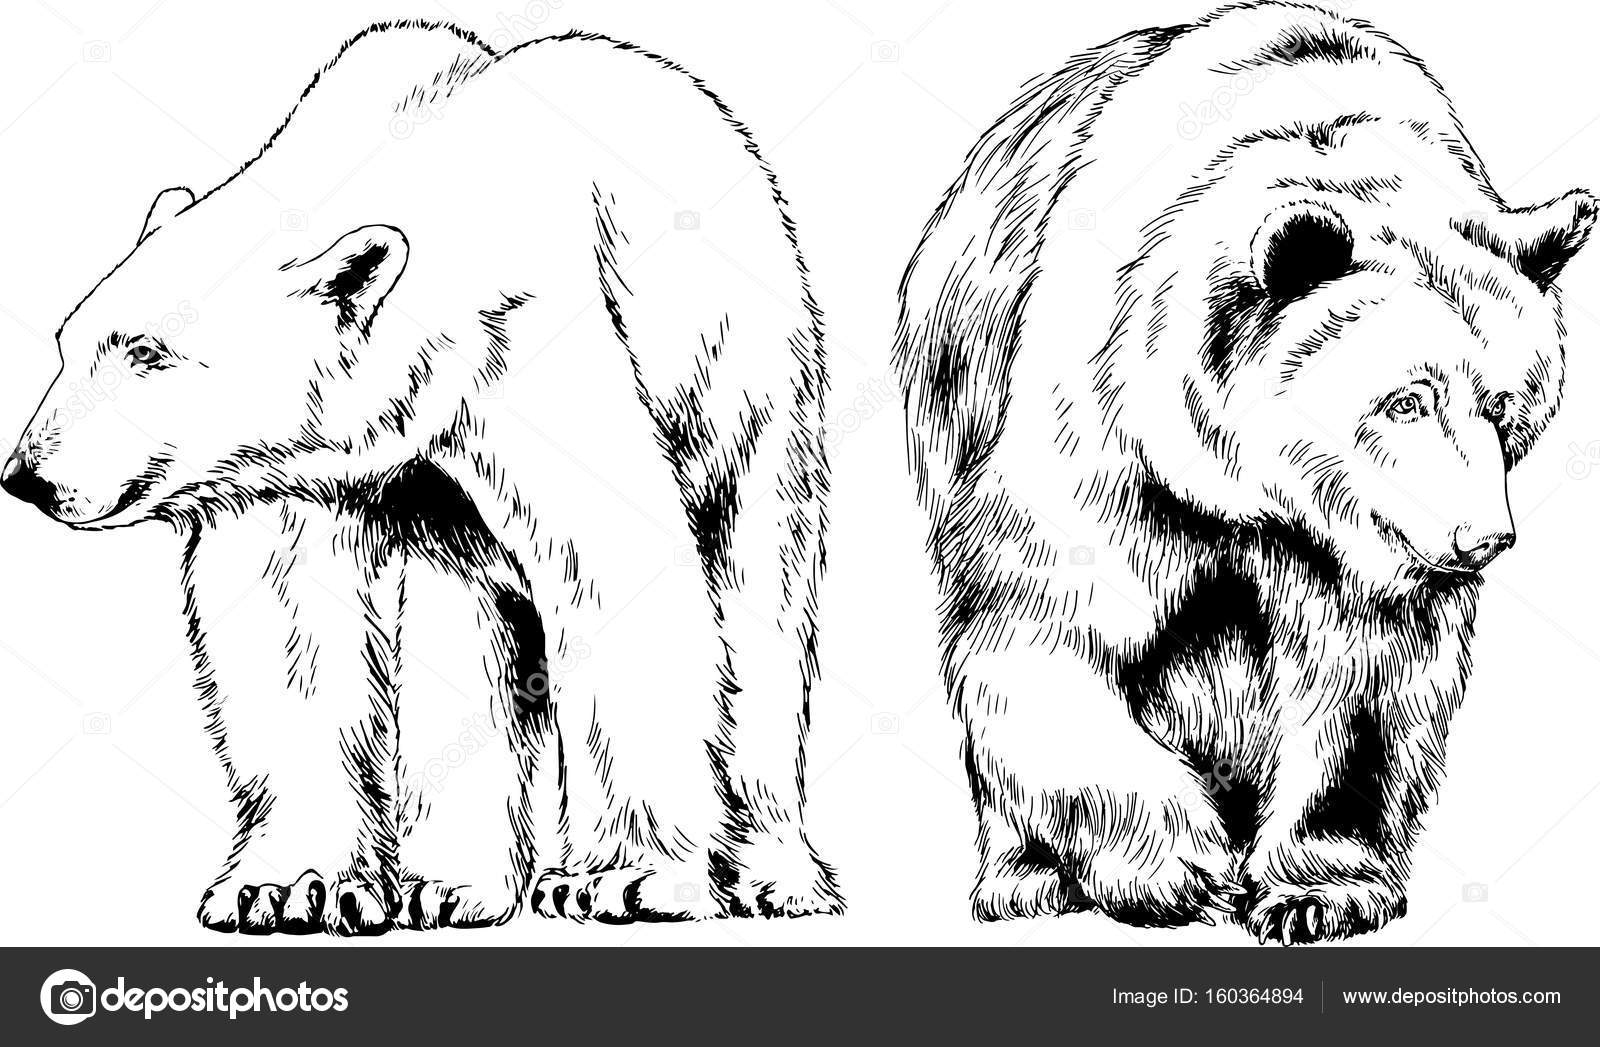 Line Drawings Of African Animals : Wild animal drawing at getdrawings.com free for personal use